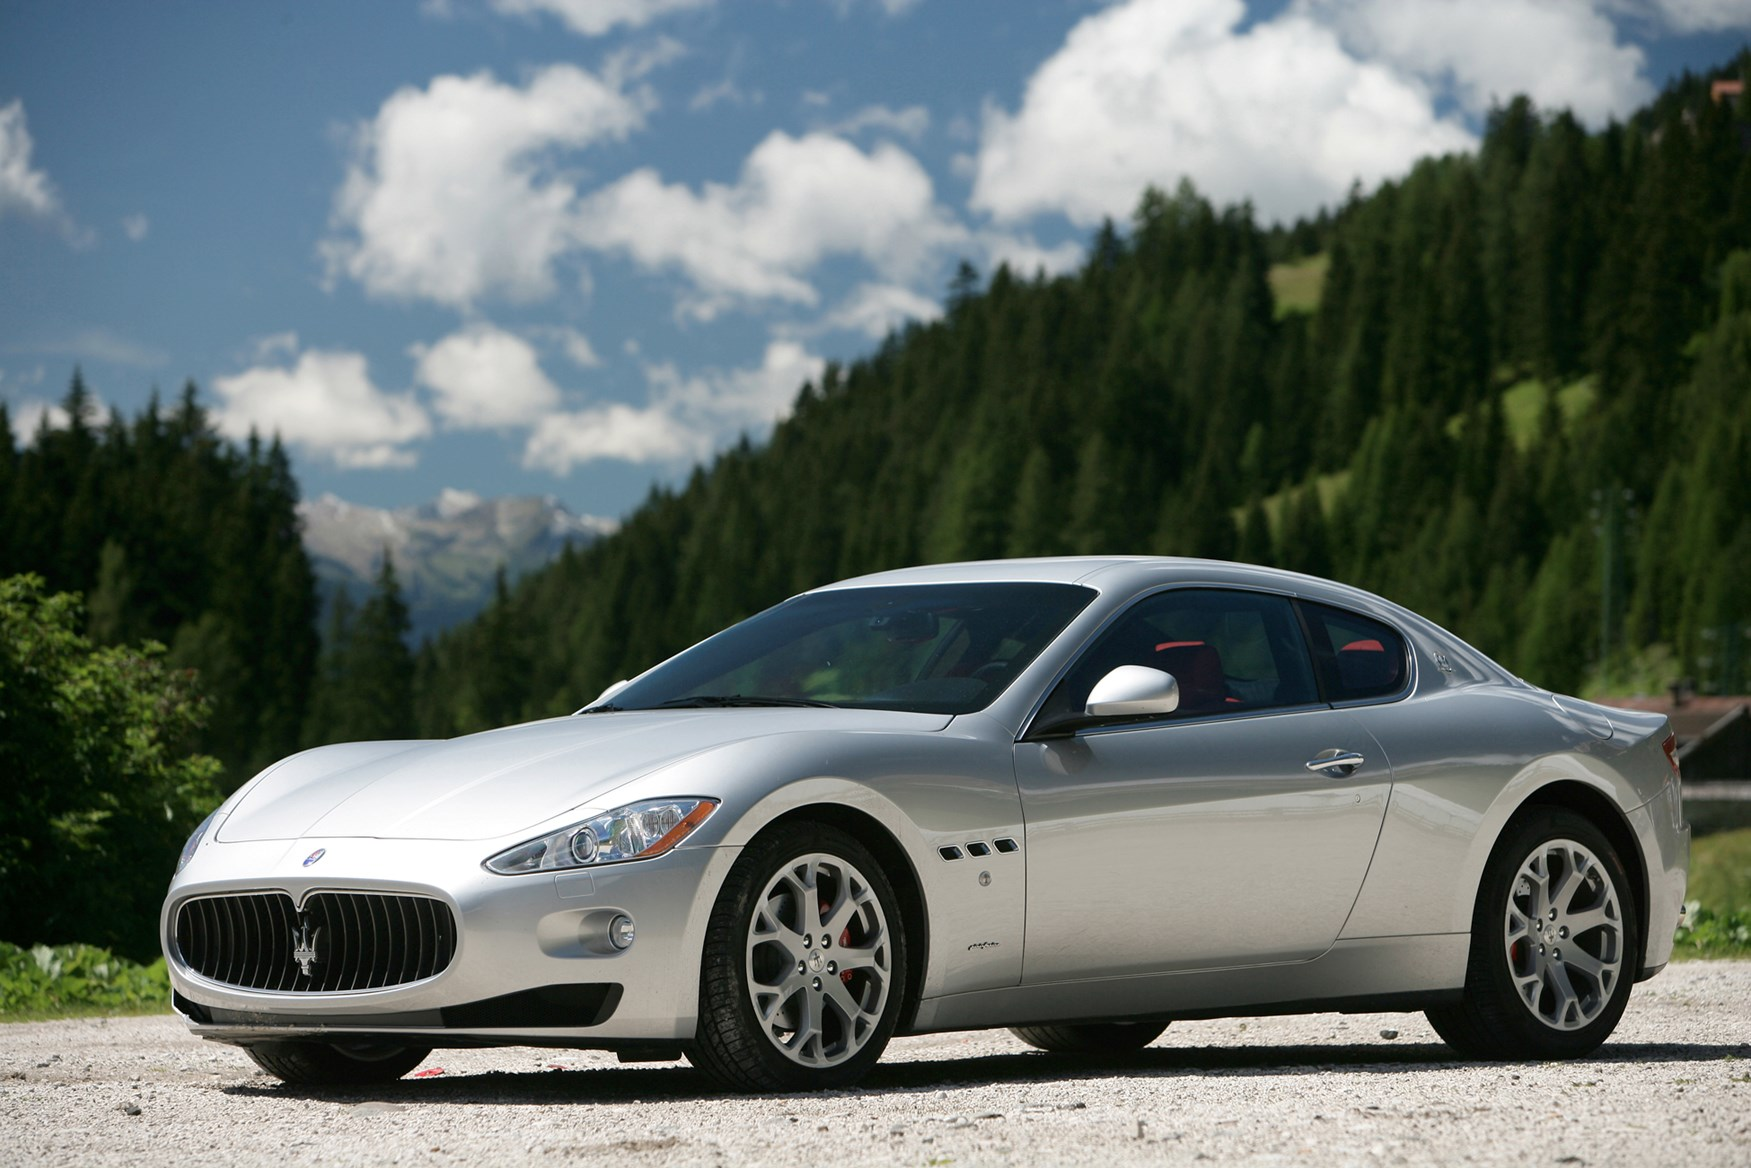 Buying And Selling A Maserati GranTurismo | Parkers